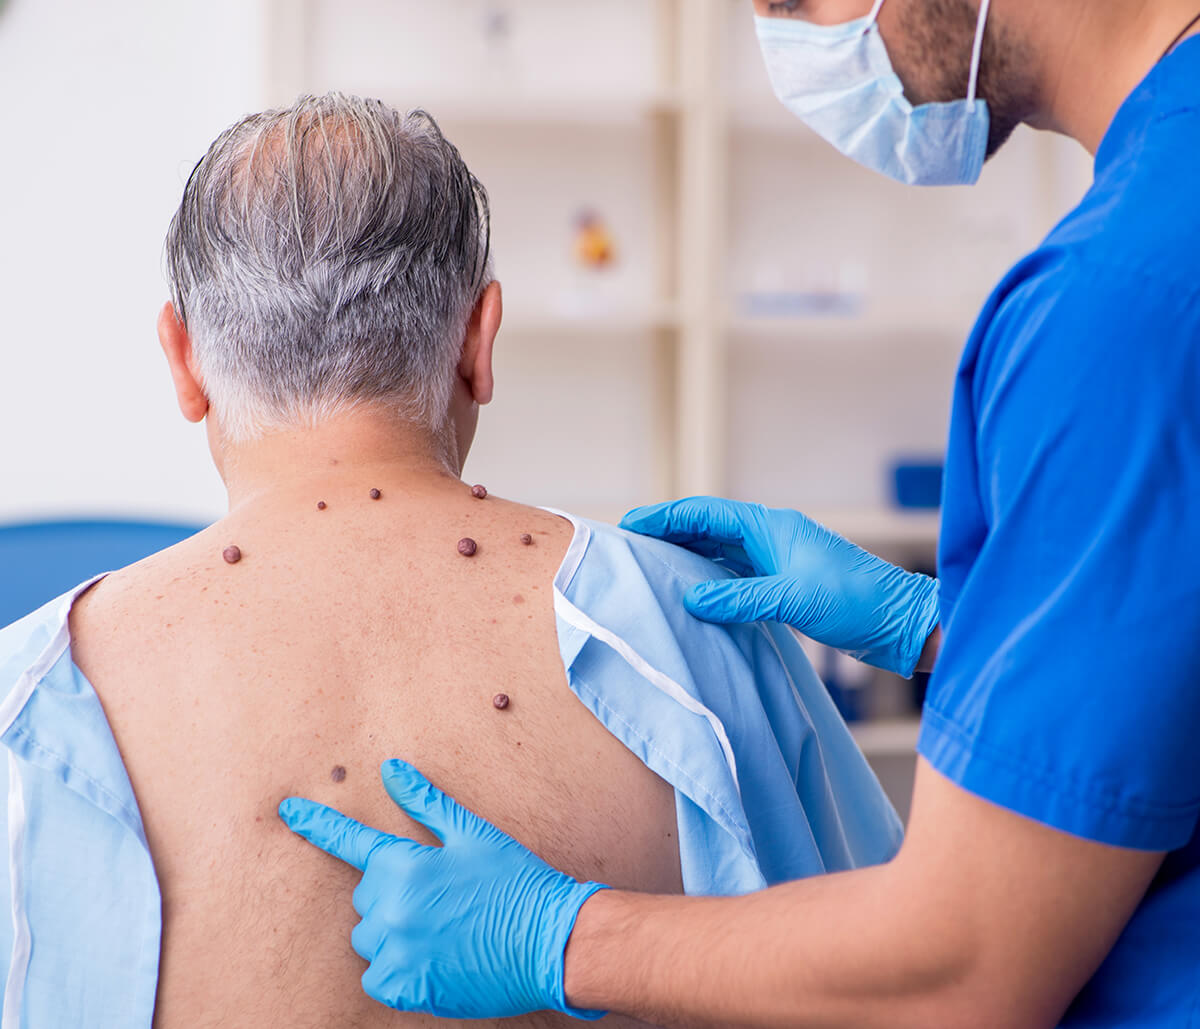 Mississauga dermatology practice provides multiple mole removal techniques